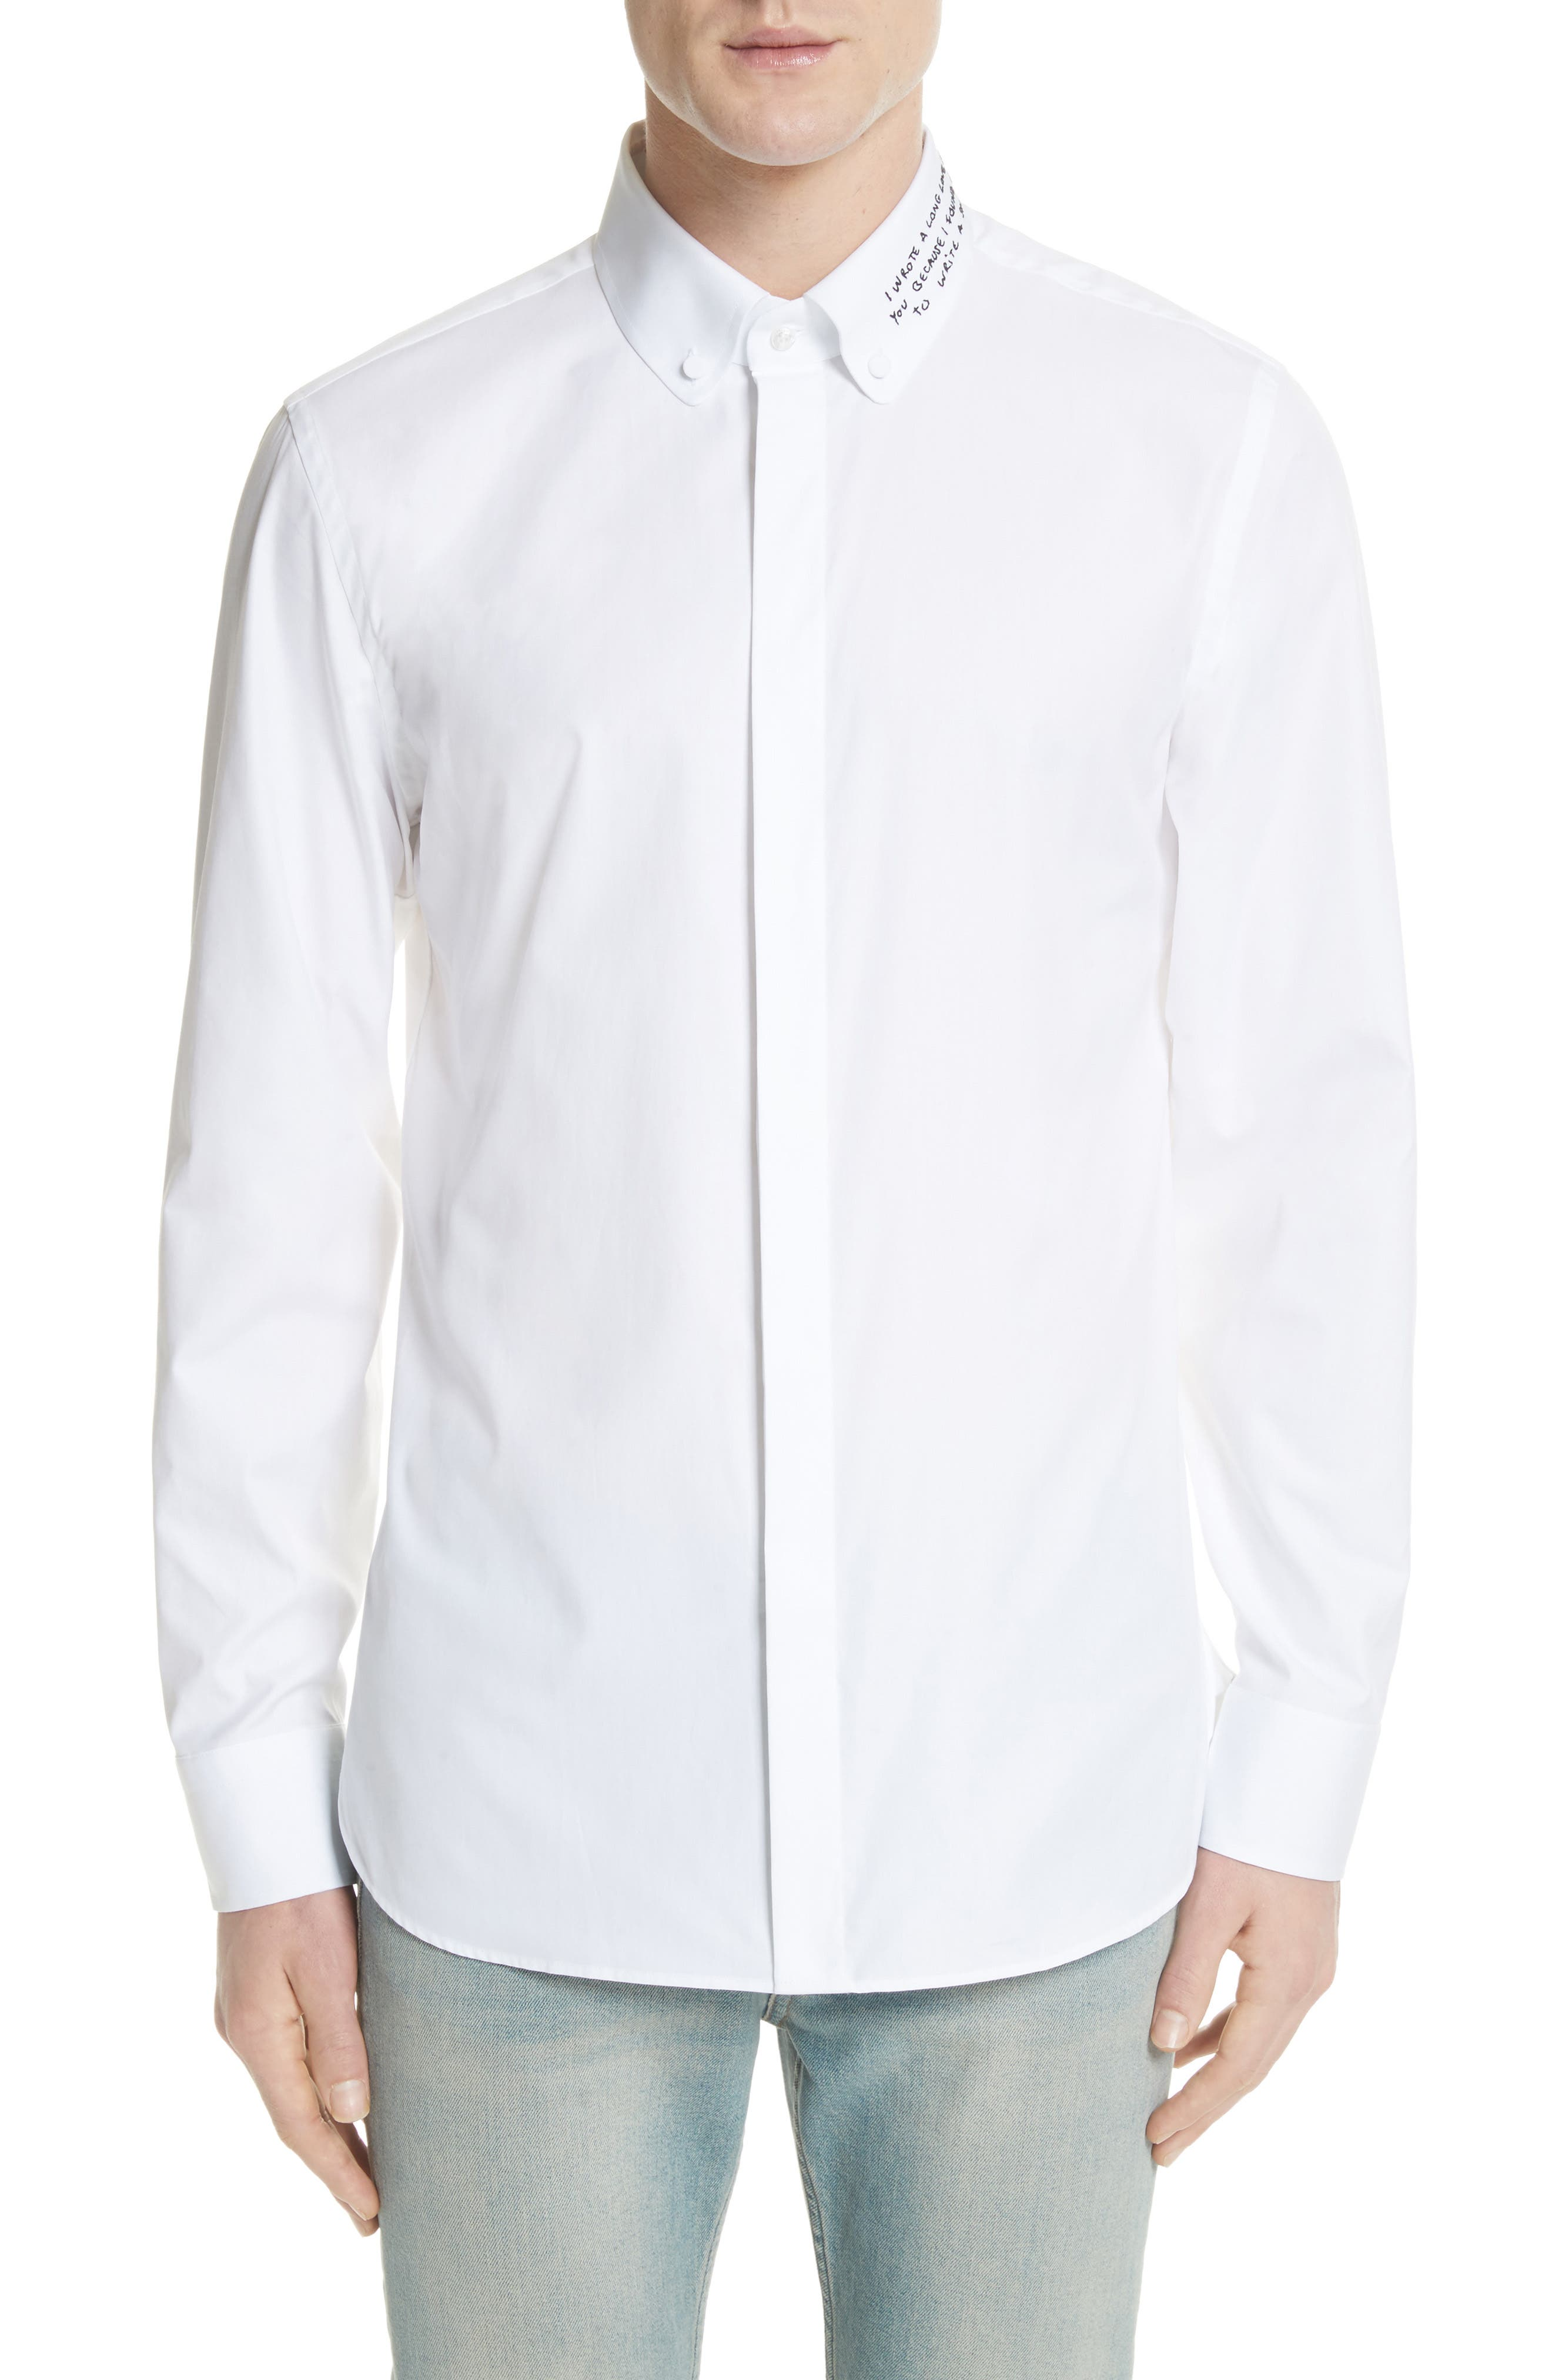 Gucci Love Poem Embroidered Collar Button-Down Shirt